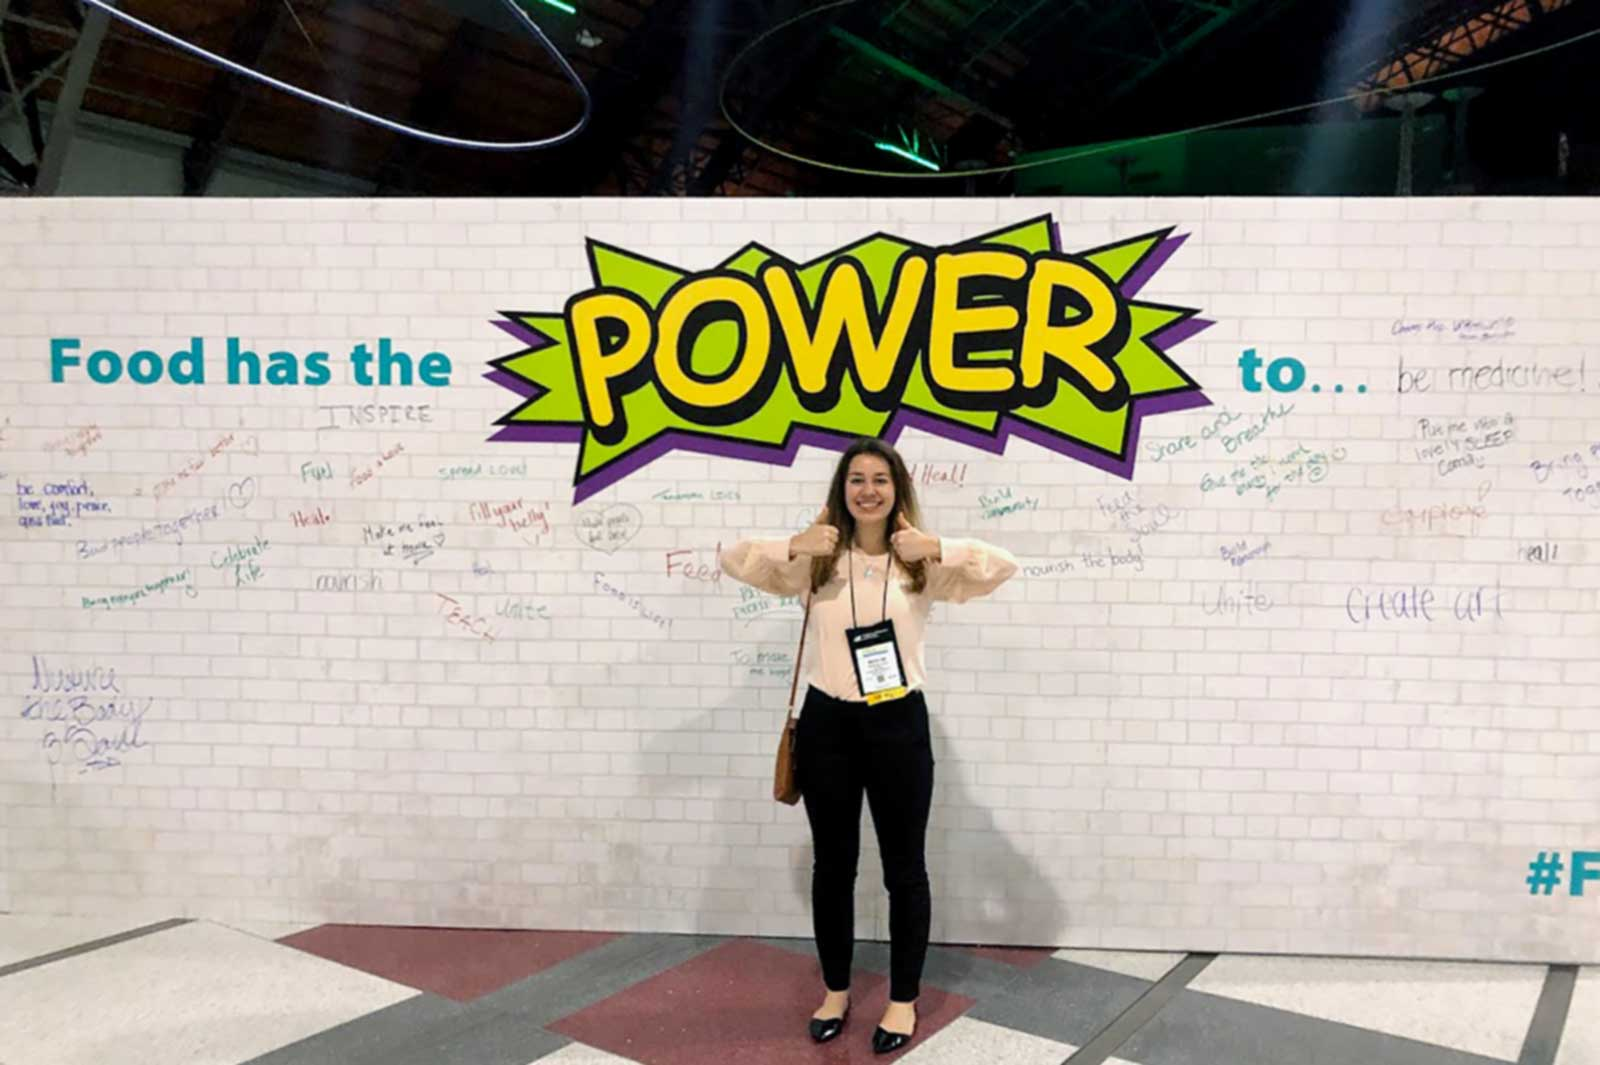 A student stands in front of a wall with writing on it.